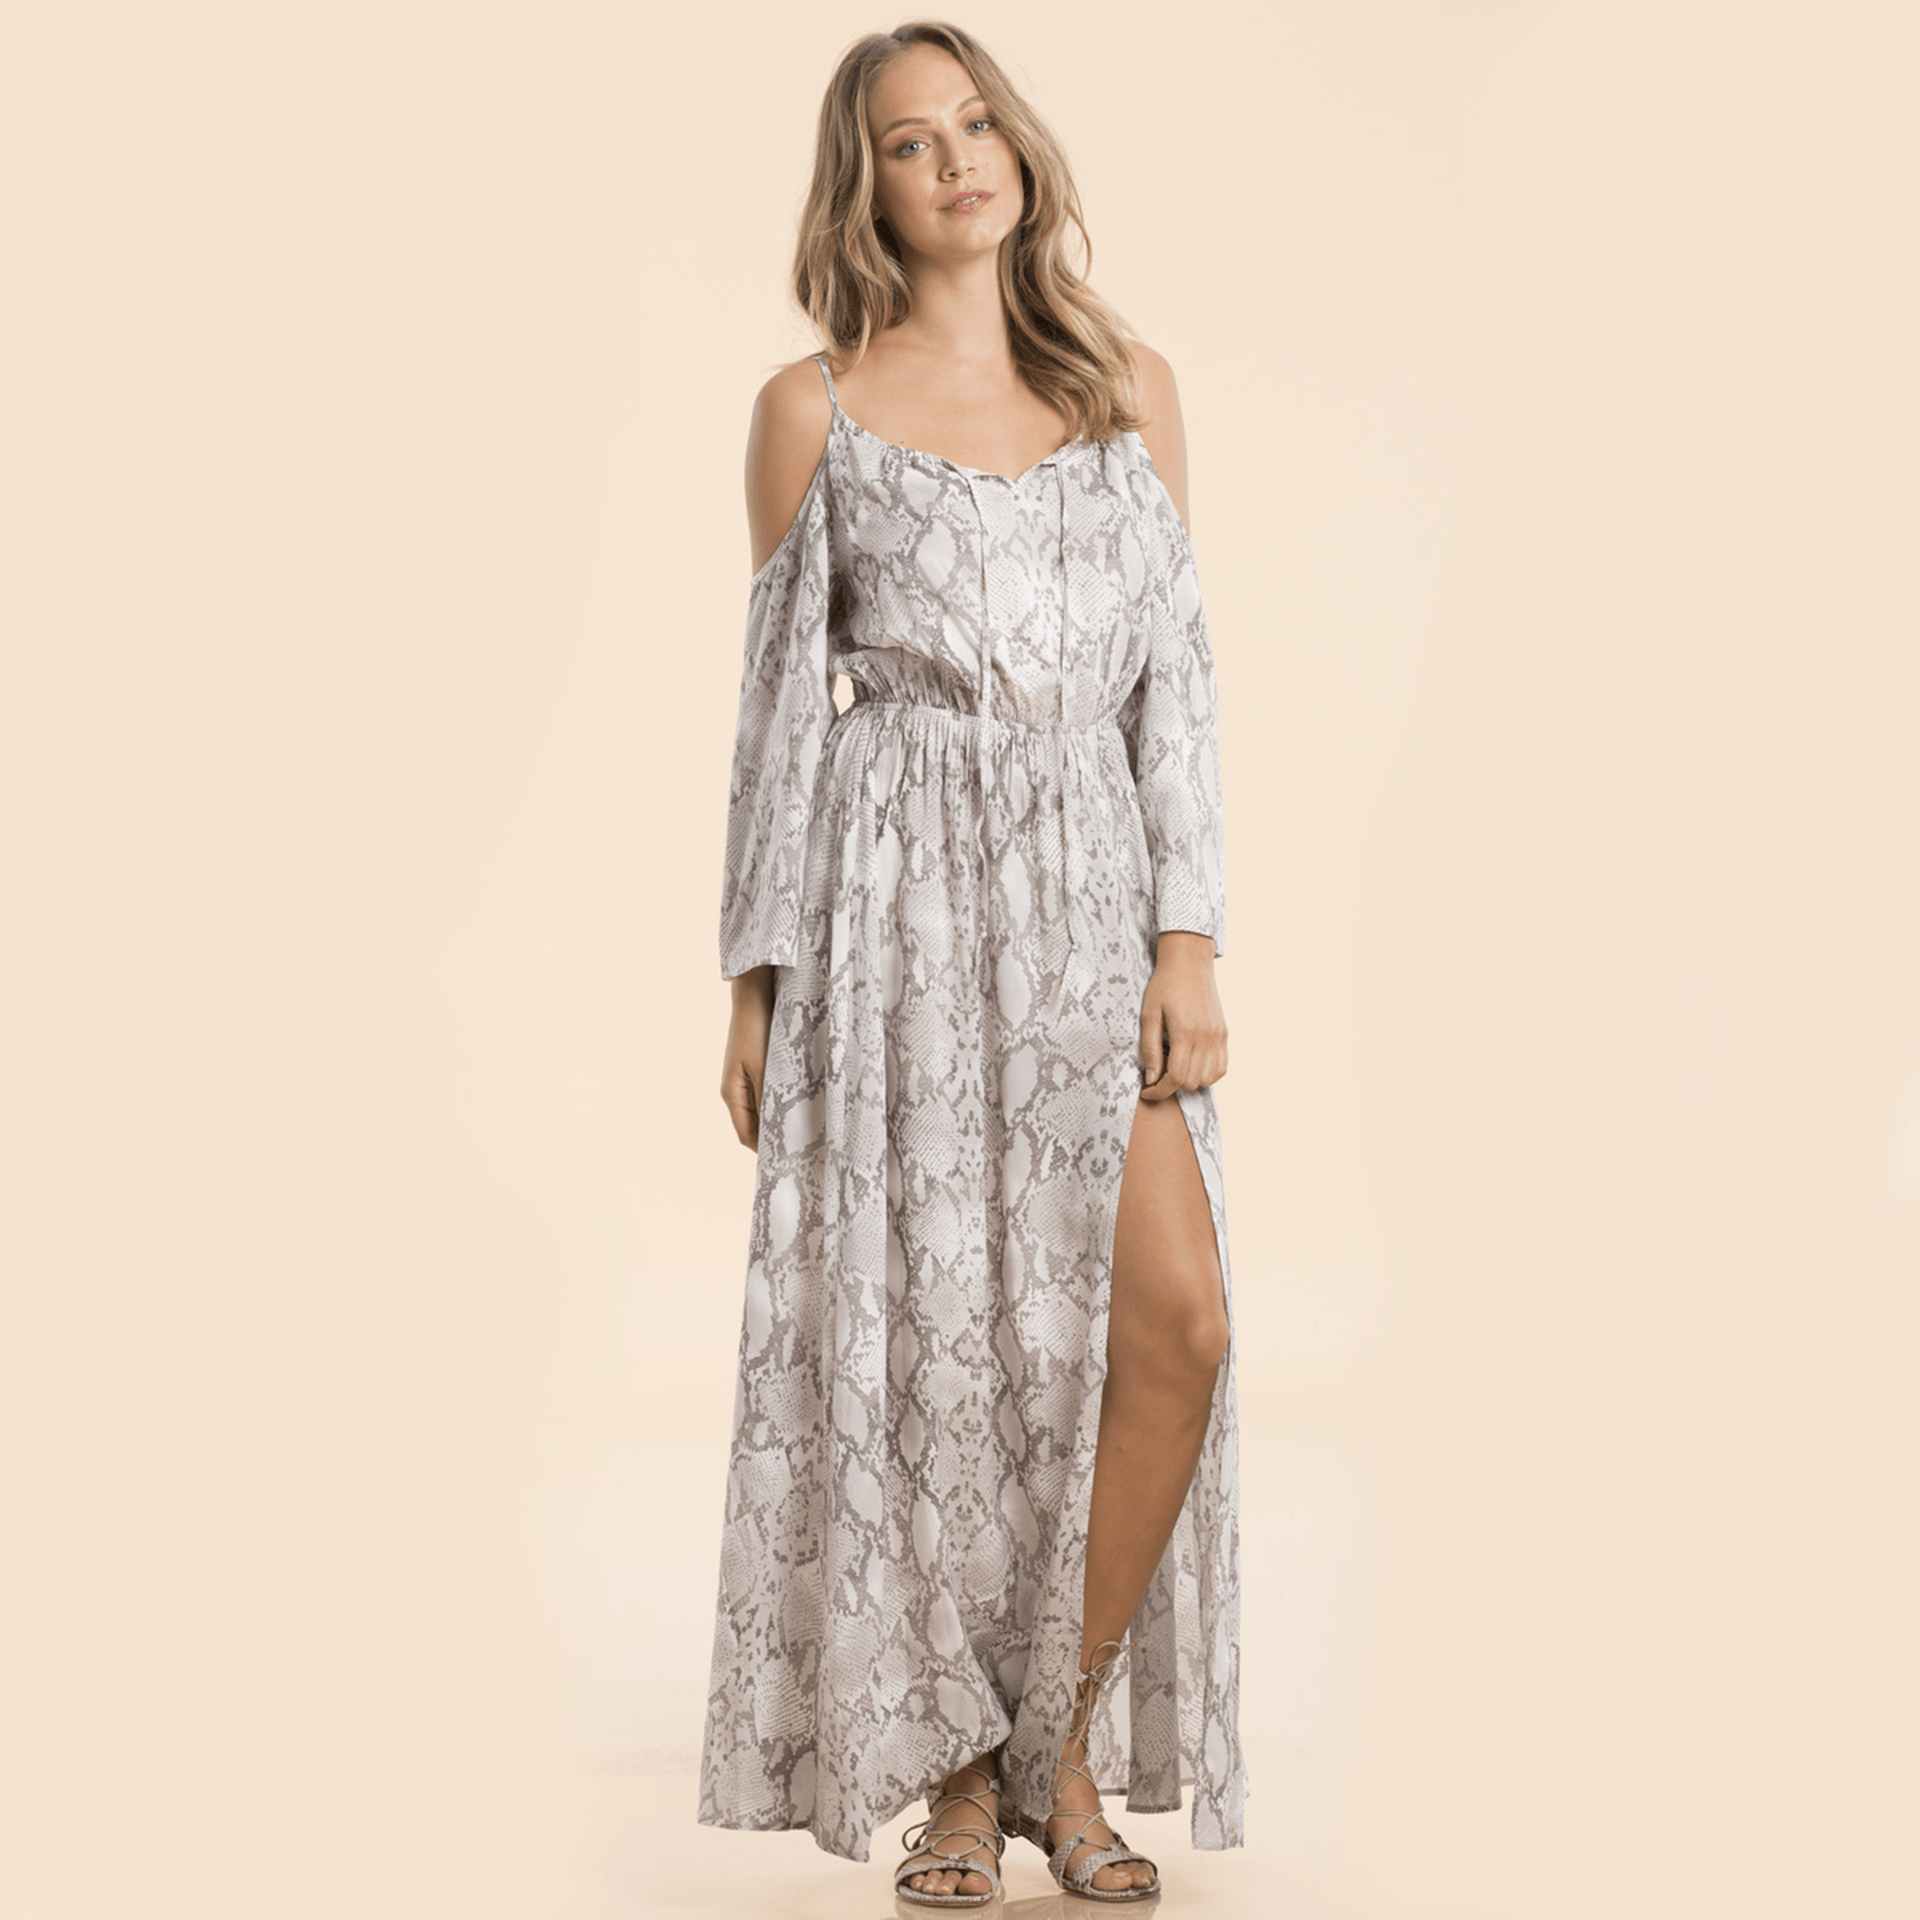 Long Sleeve Reptile Print Maxi Dress with Cold Shoulder and Slit - Arlo and Arrows